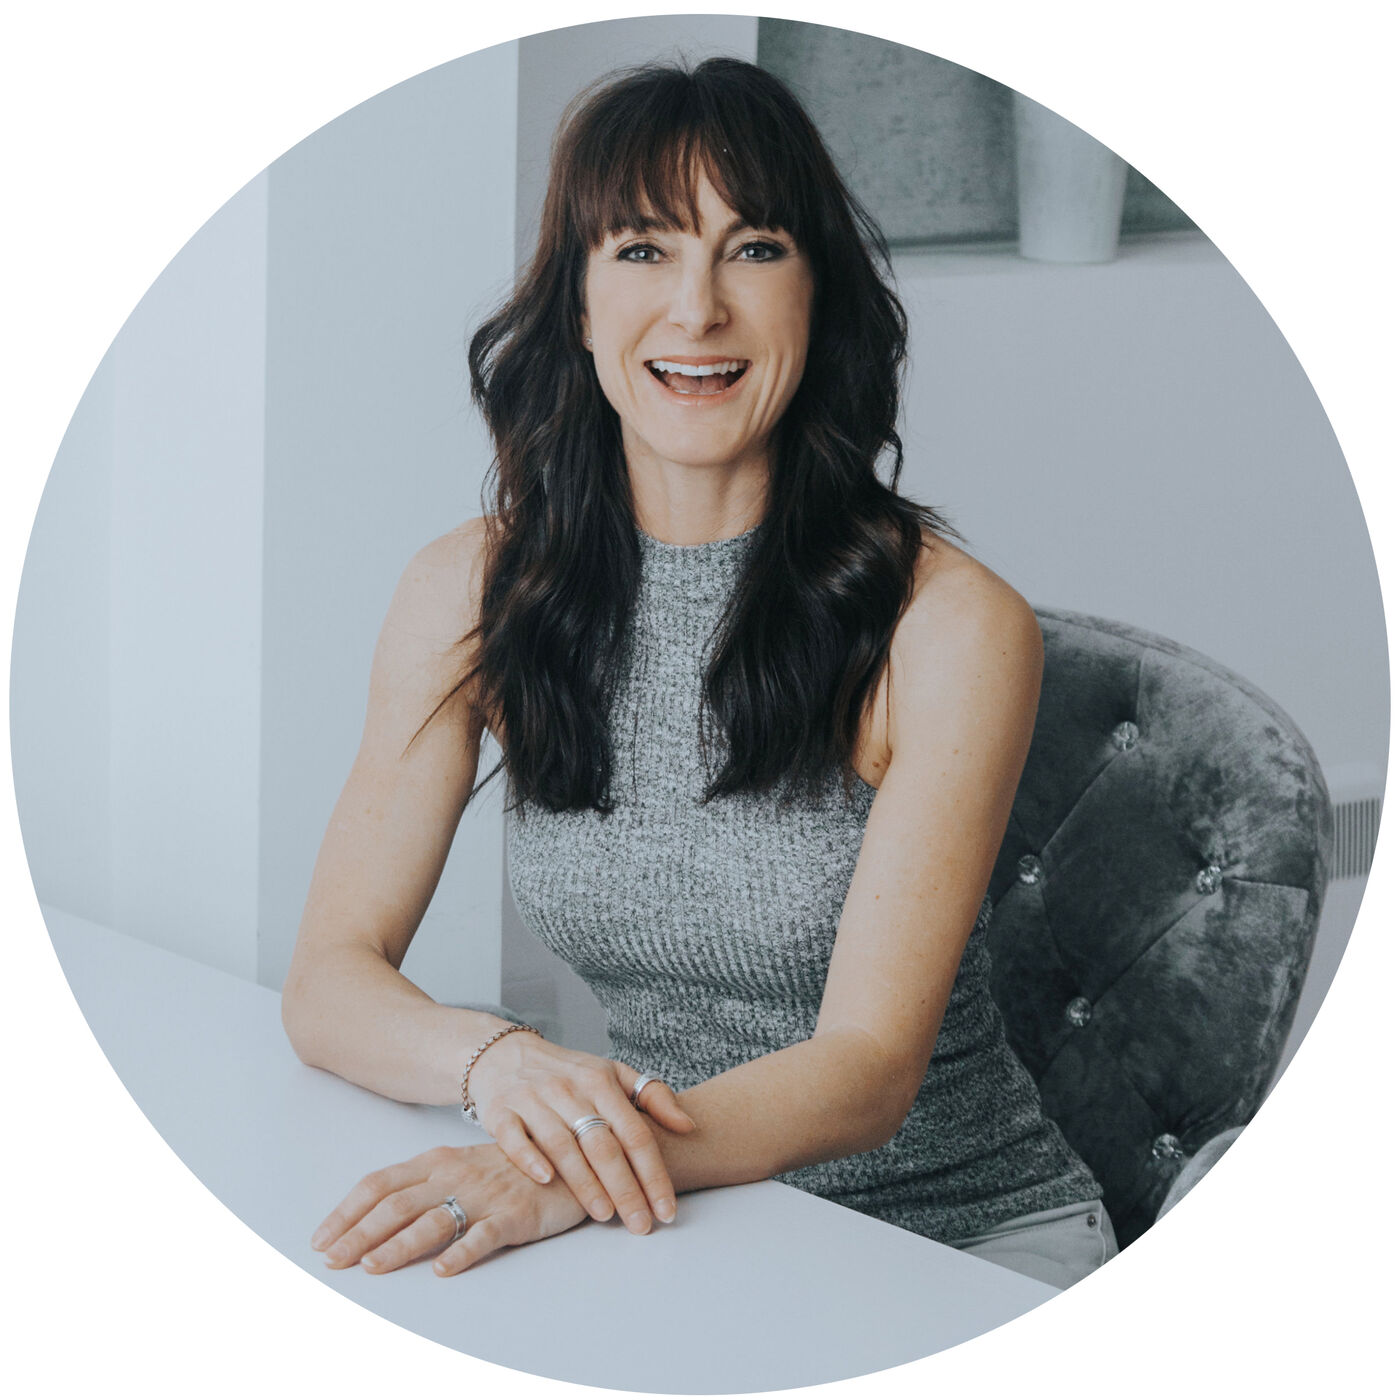 #50 Emma Jay provides immense value, training, and coaching towards your health and wellbeing